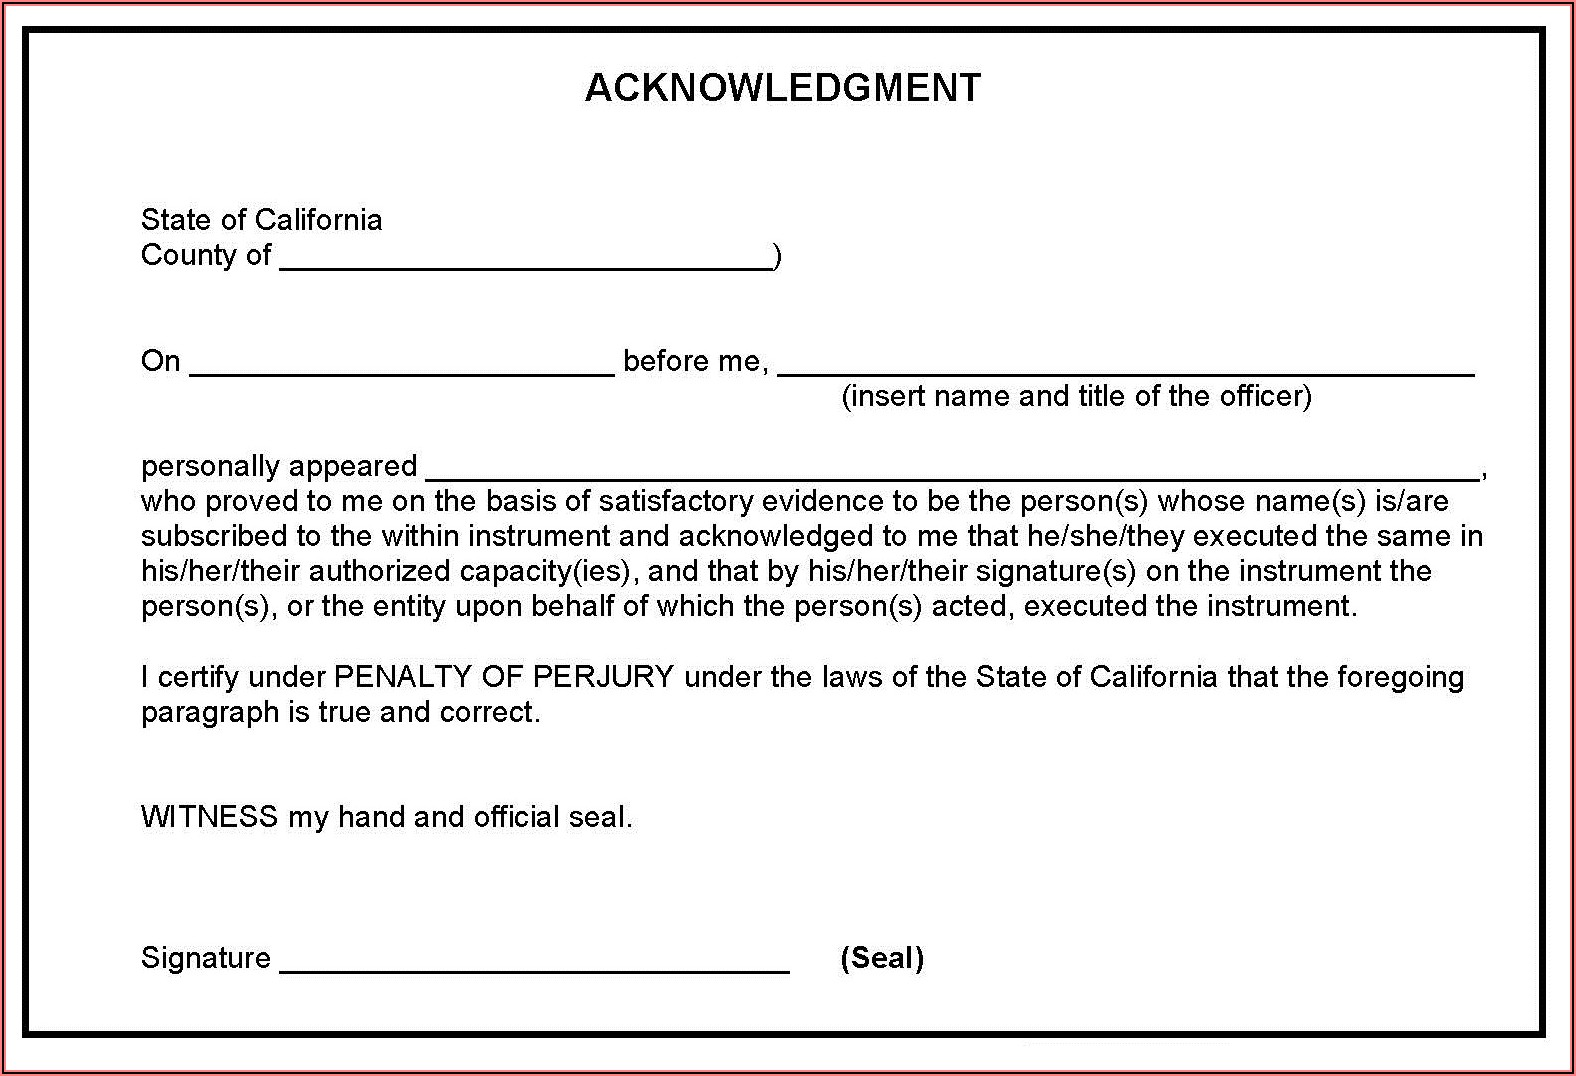 Ca Notary Acknowledgement Forms